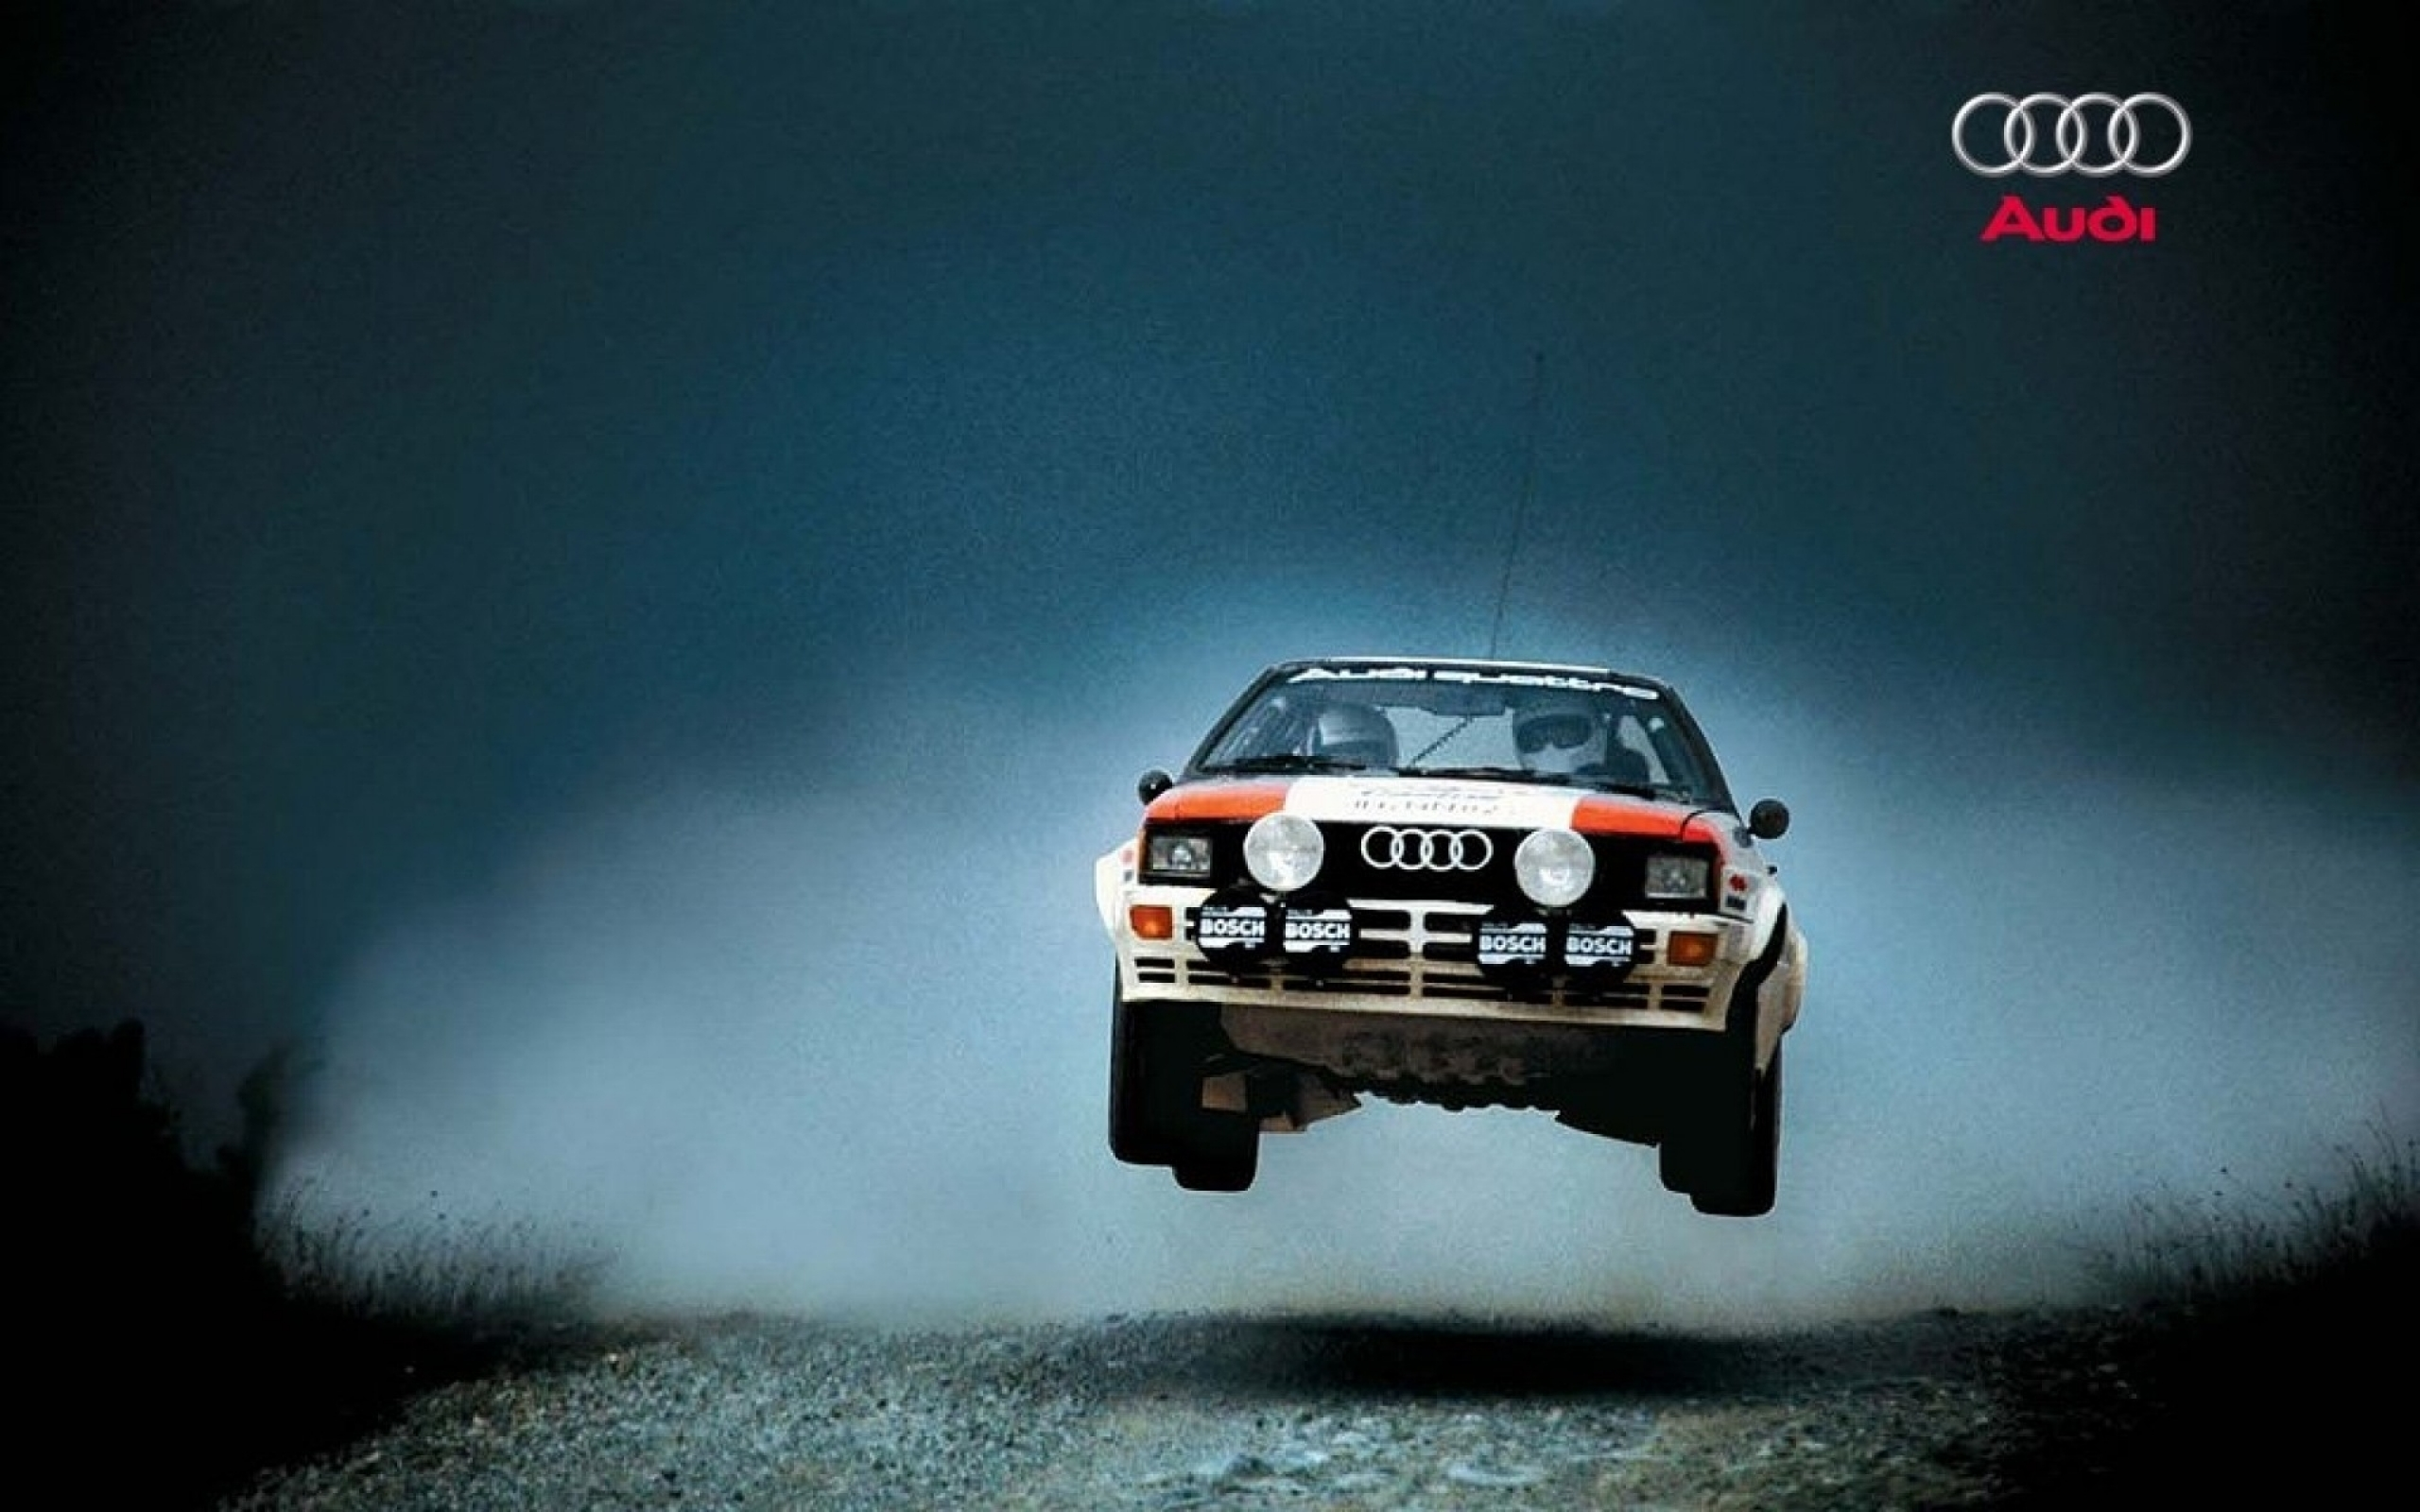 Audi Quattro for the guy who wanted a group B Wallpaper 2560x1600